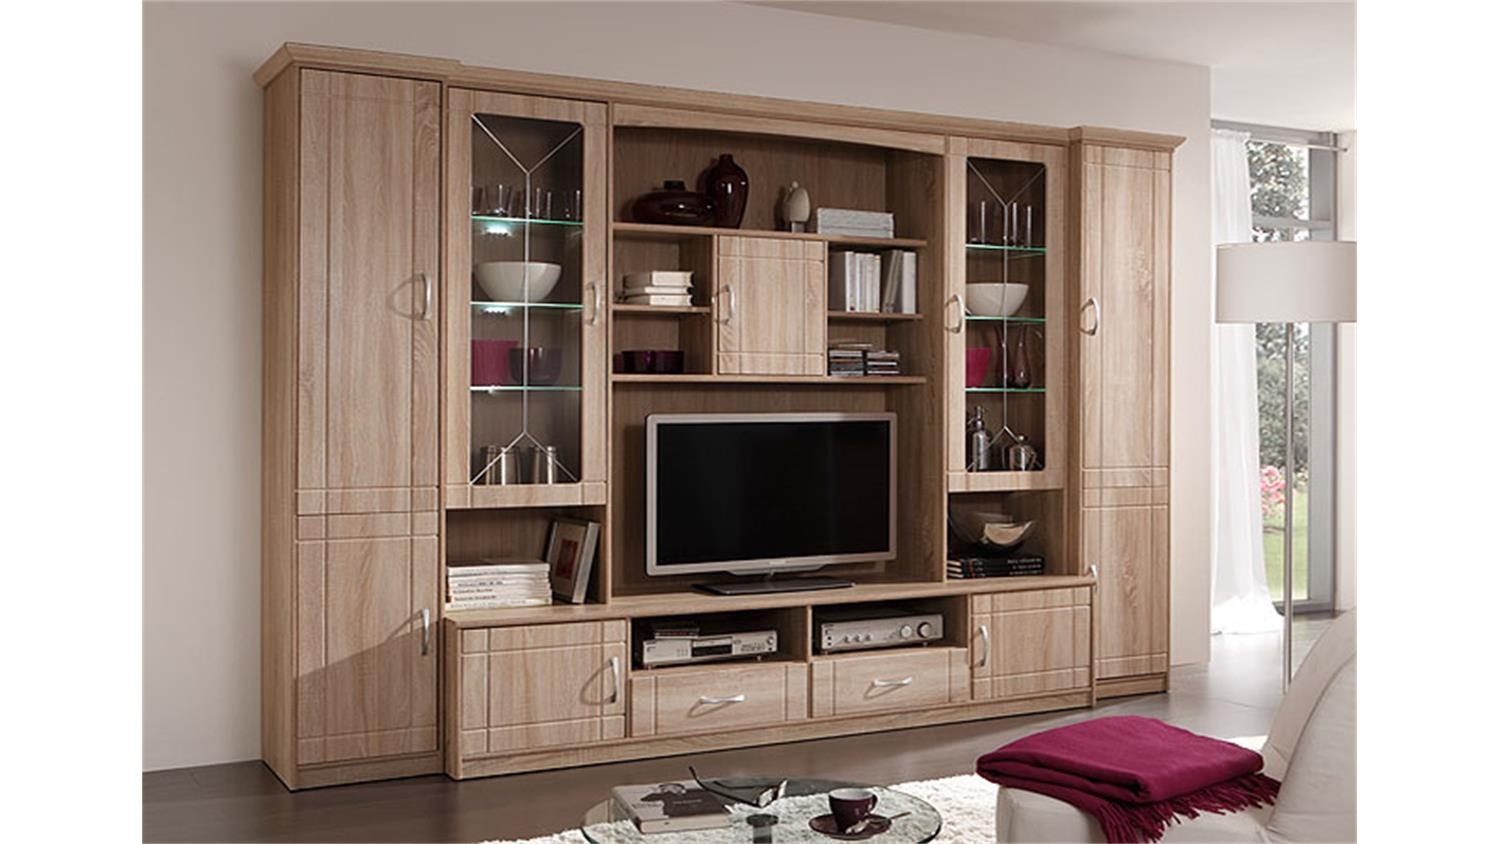 wohnwand village 4 sonoma eiche mdf inkl led. Black Bedroom Furniture Sets. Home Design Ideas